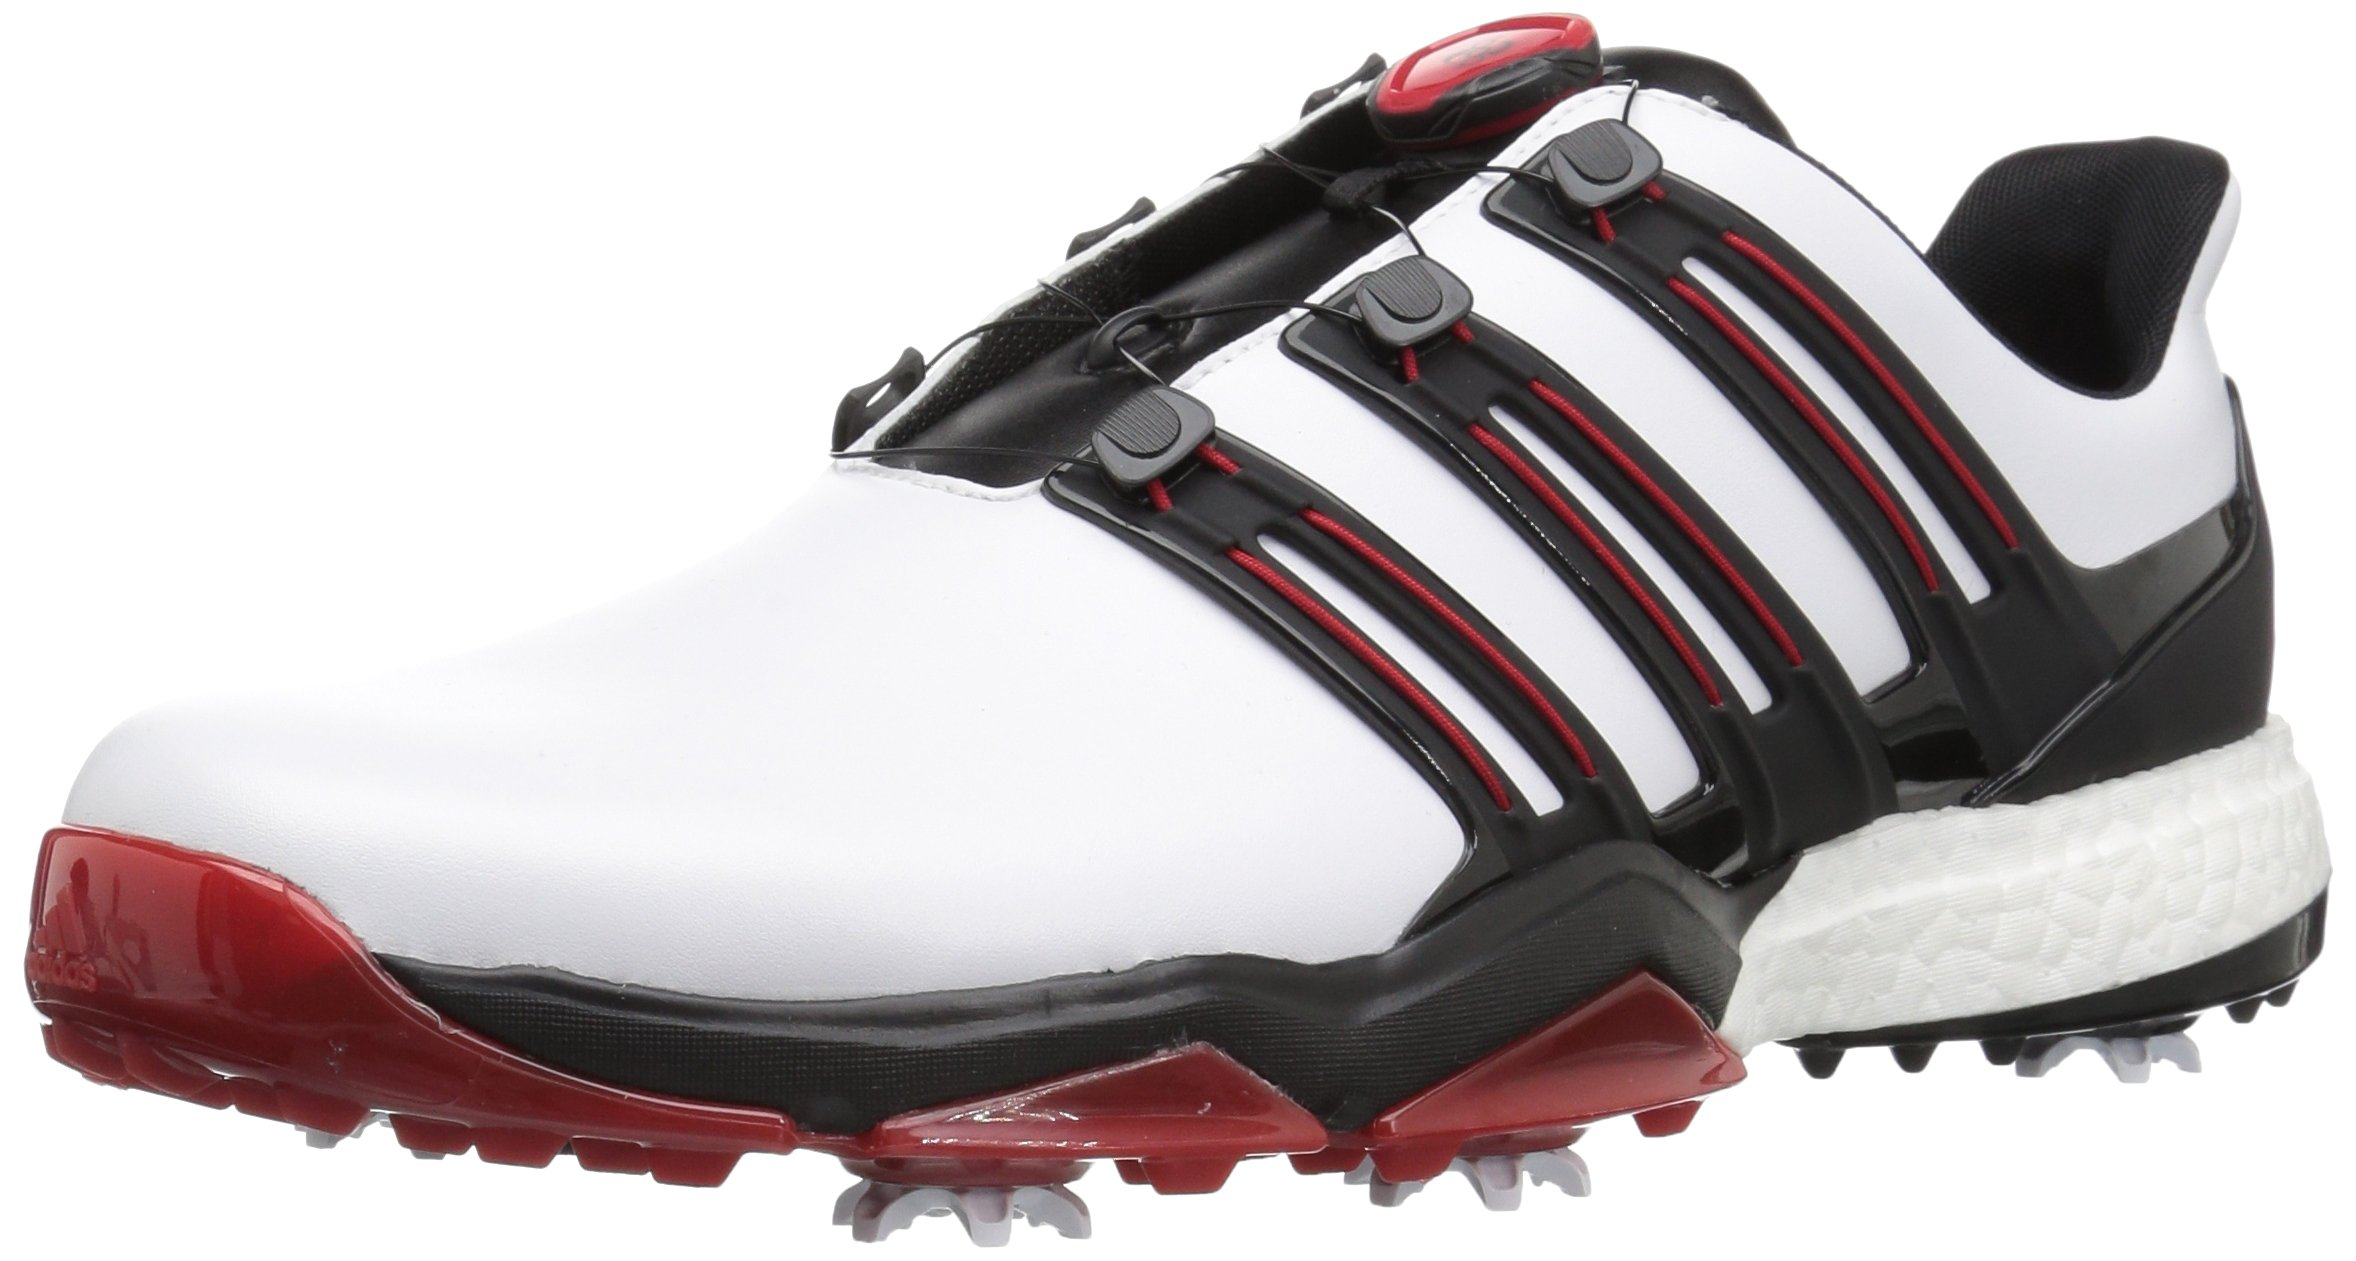 Adidas Powerband BOA Boost Golf Shoes 2017 FTWR White/Core Black/Scarlet Wide 9.5 by adidas